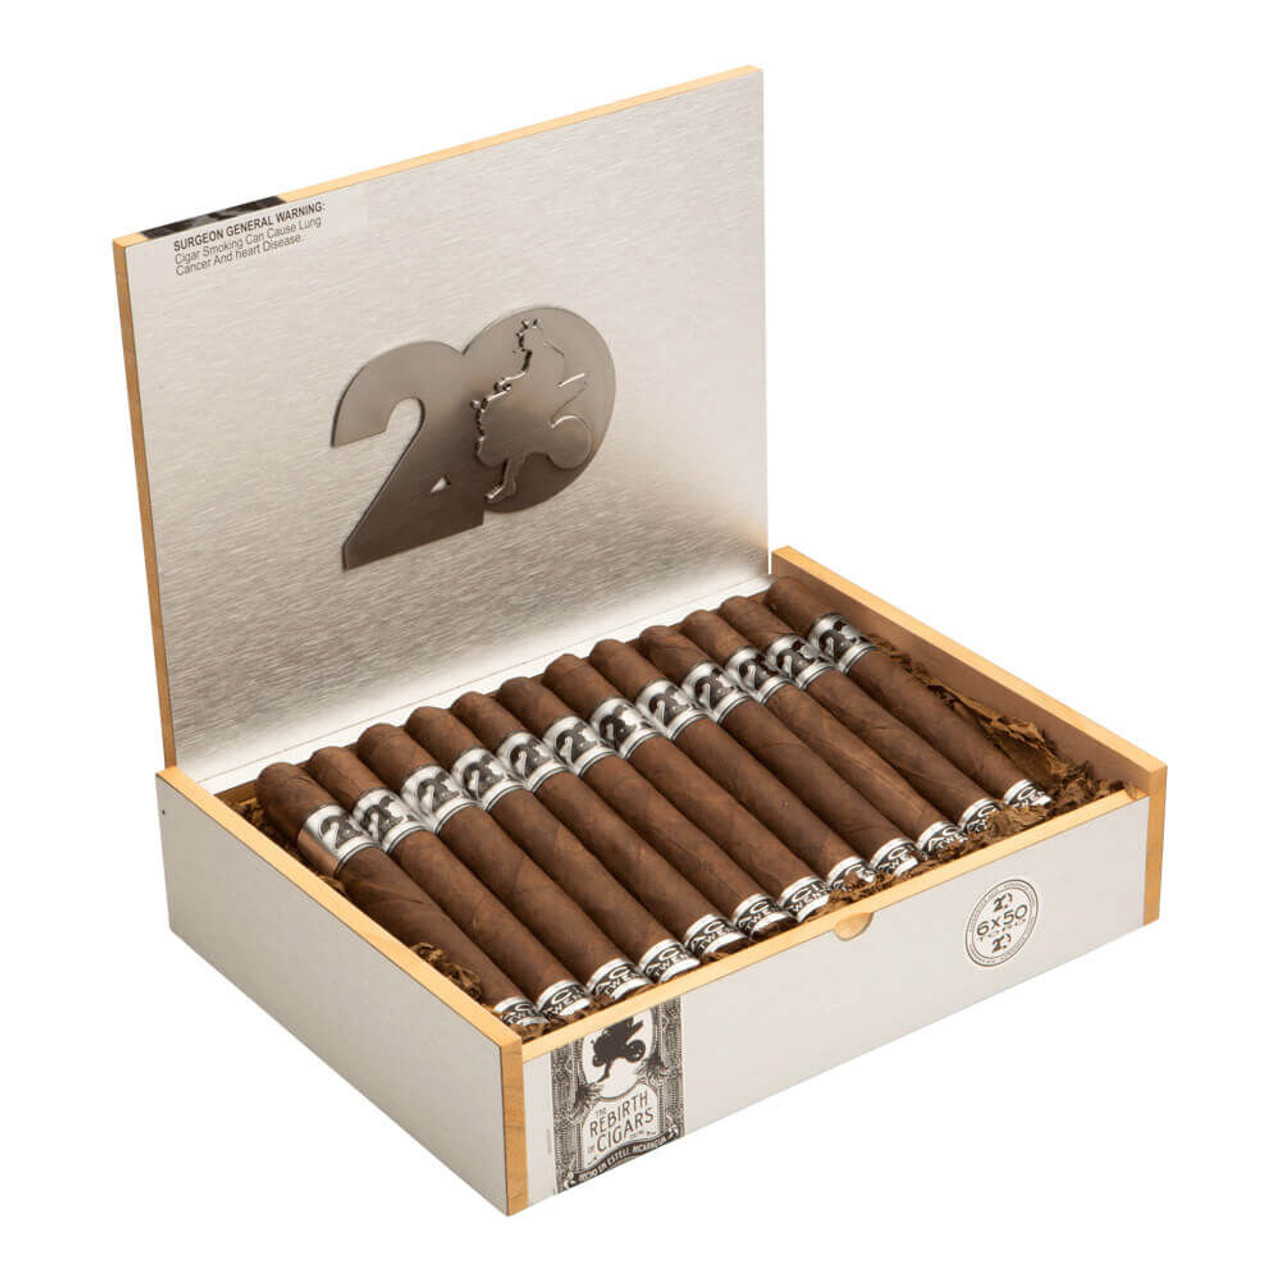 ACID 20th Anniversary Toro Cigars - 6 x 50 (Box of 24)